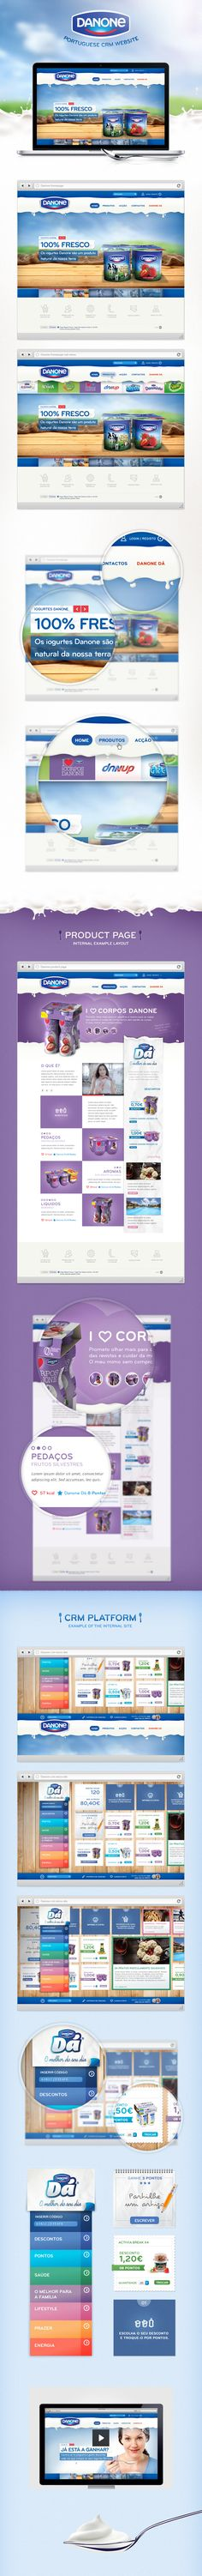 I love how the layout changes between sections Danone Portuguese Website / Hugo Miguel Sousa.